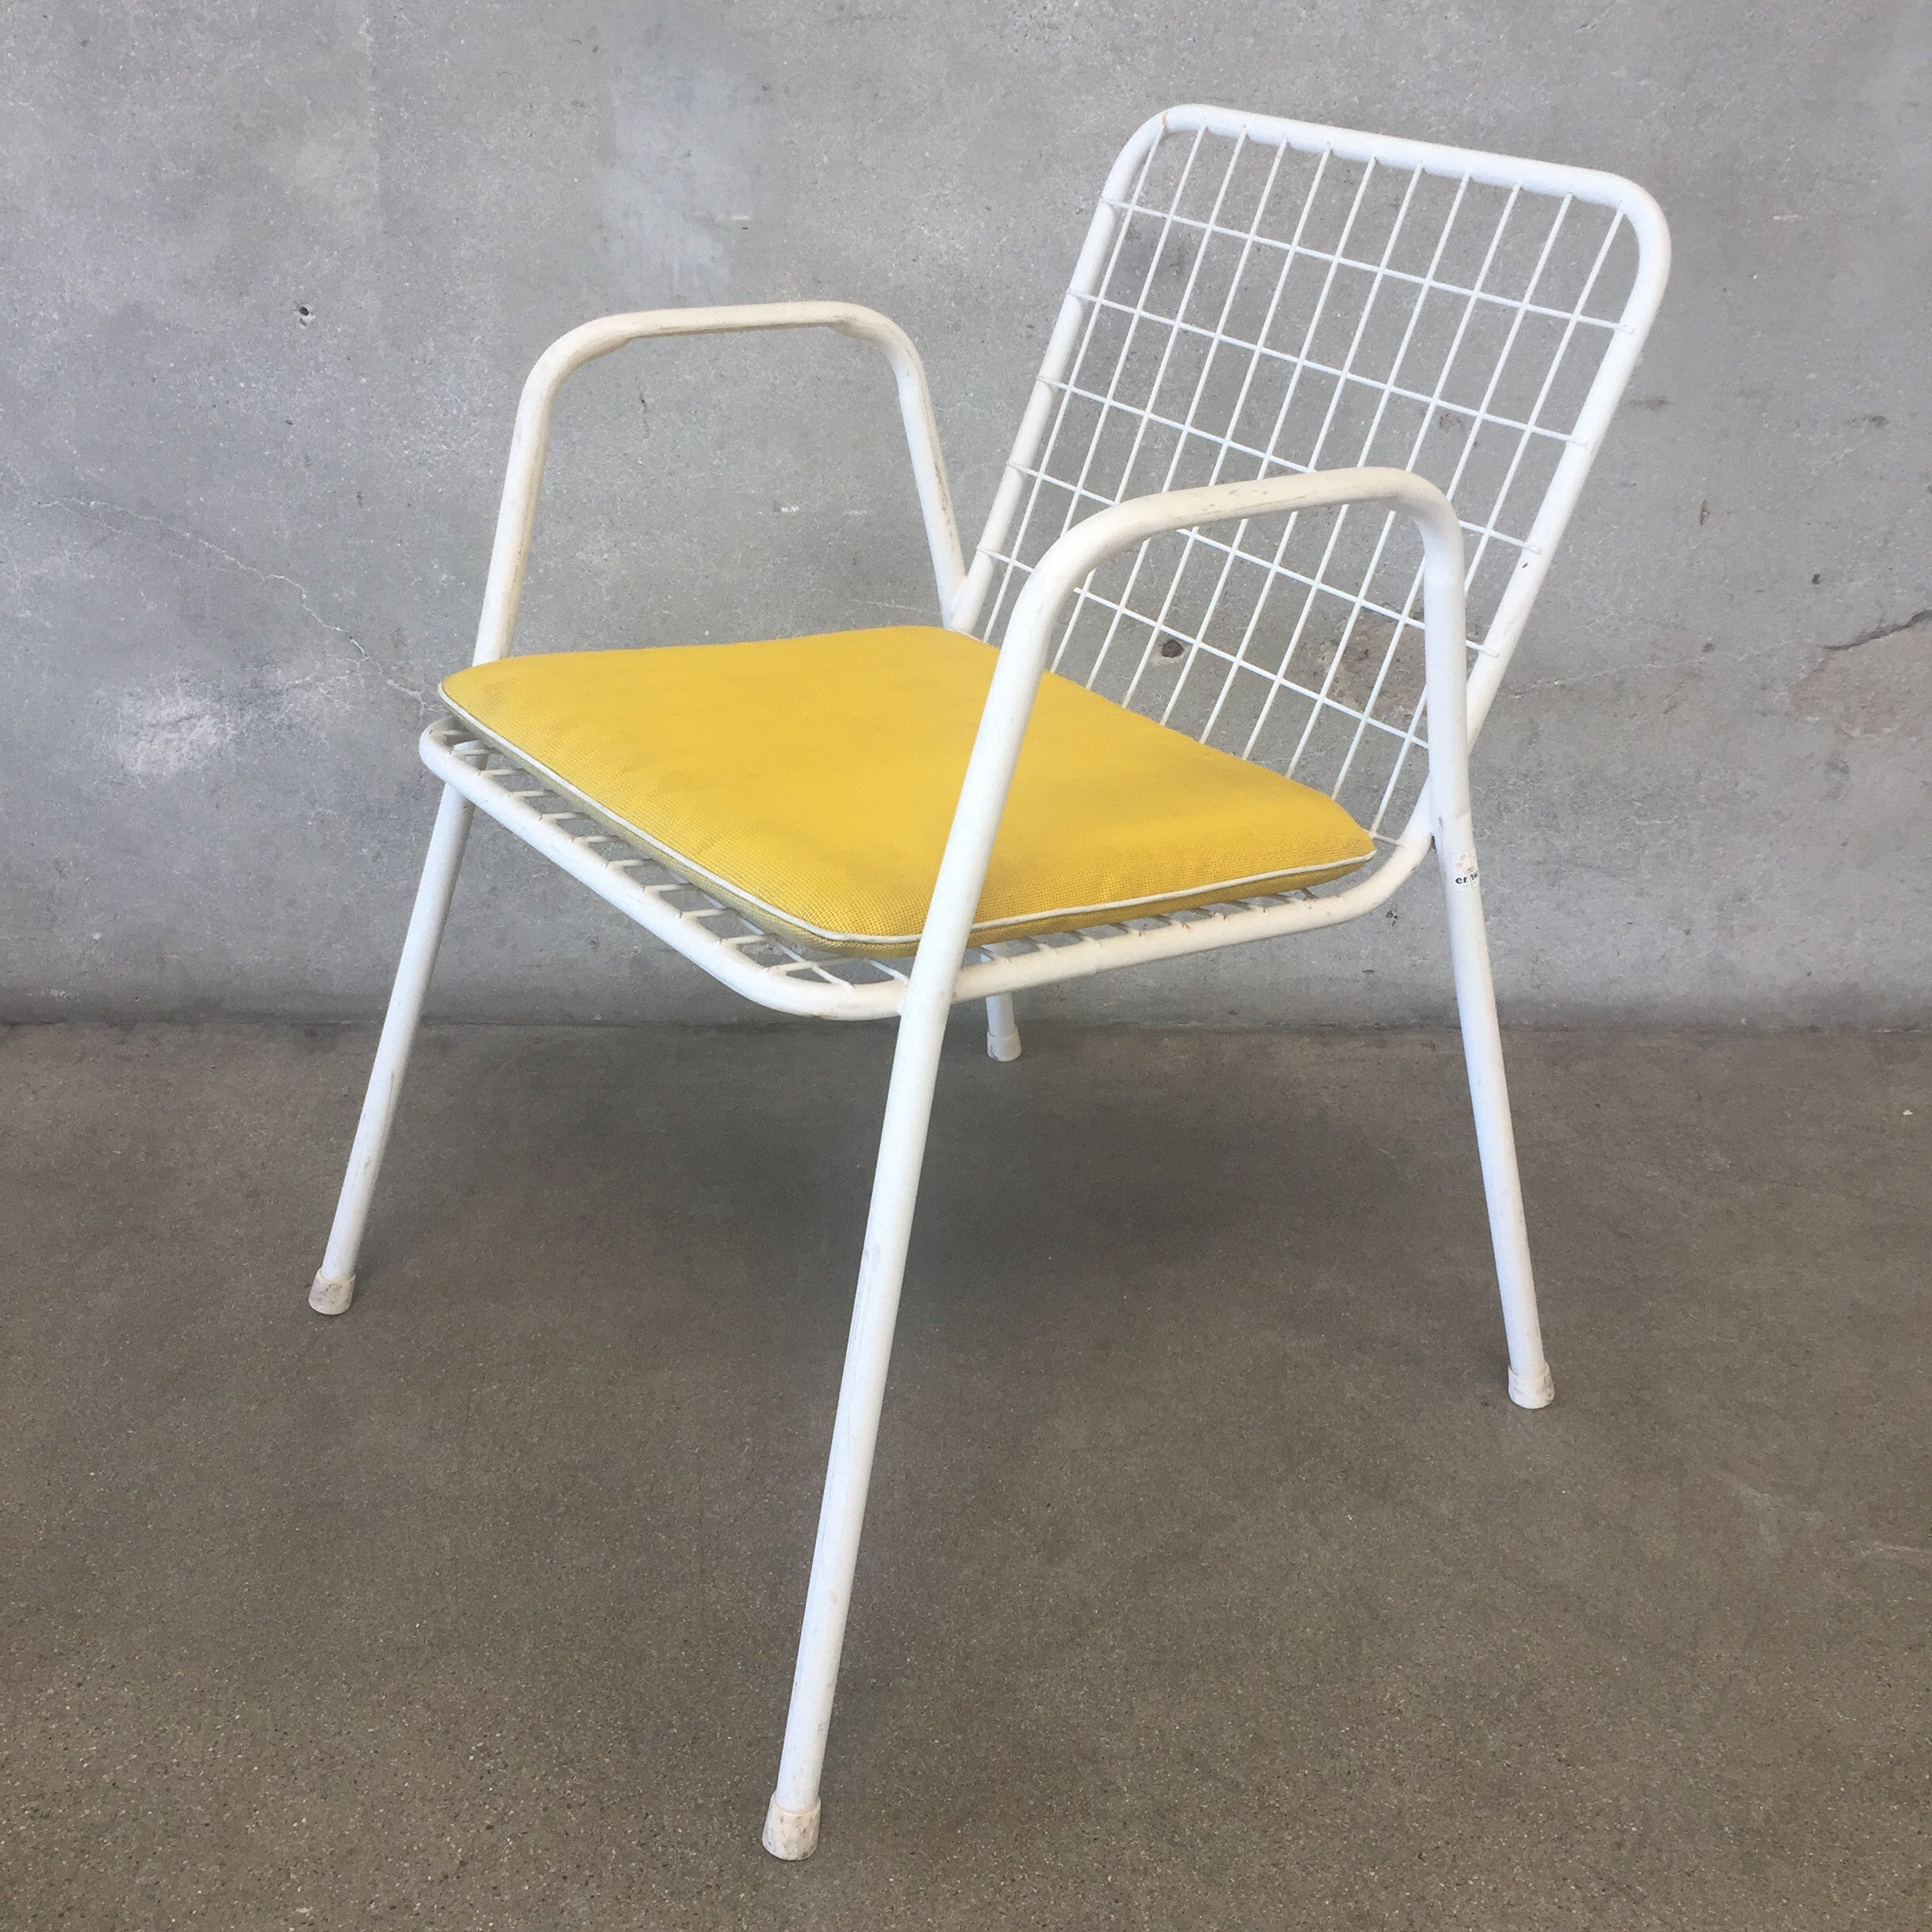 vintage patio chairs by emu italy - Vintage Patio Furniture